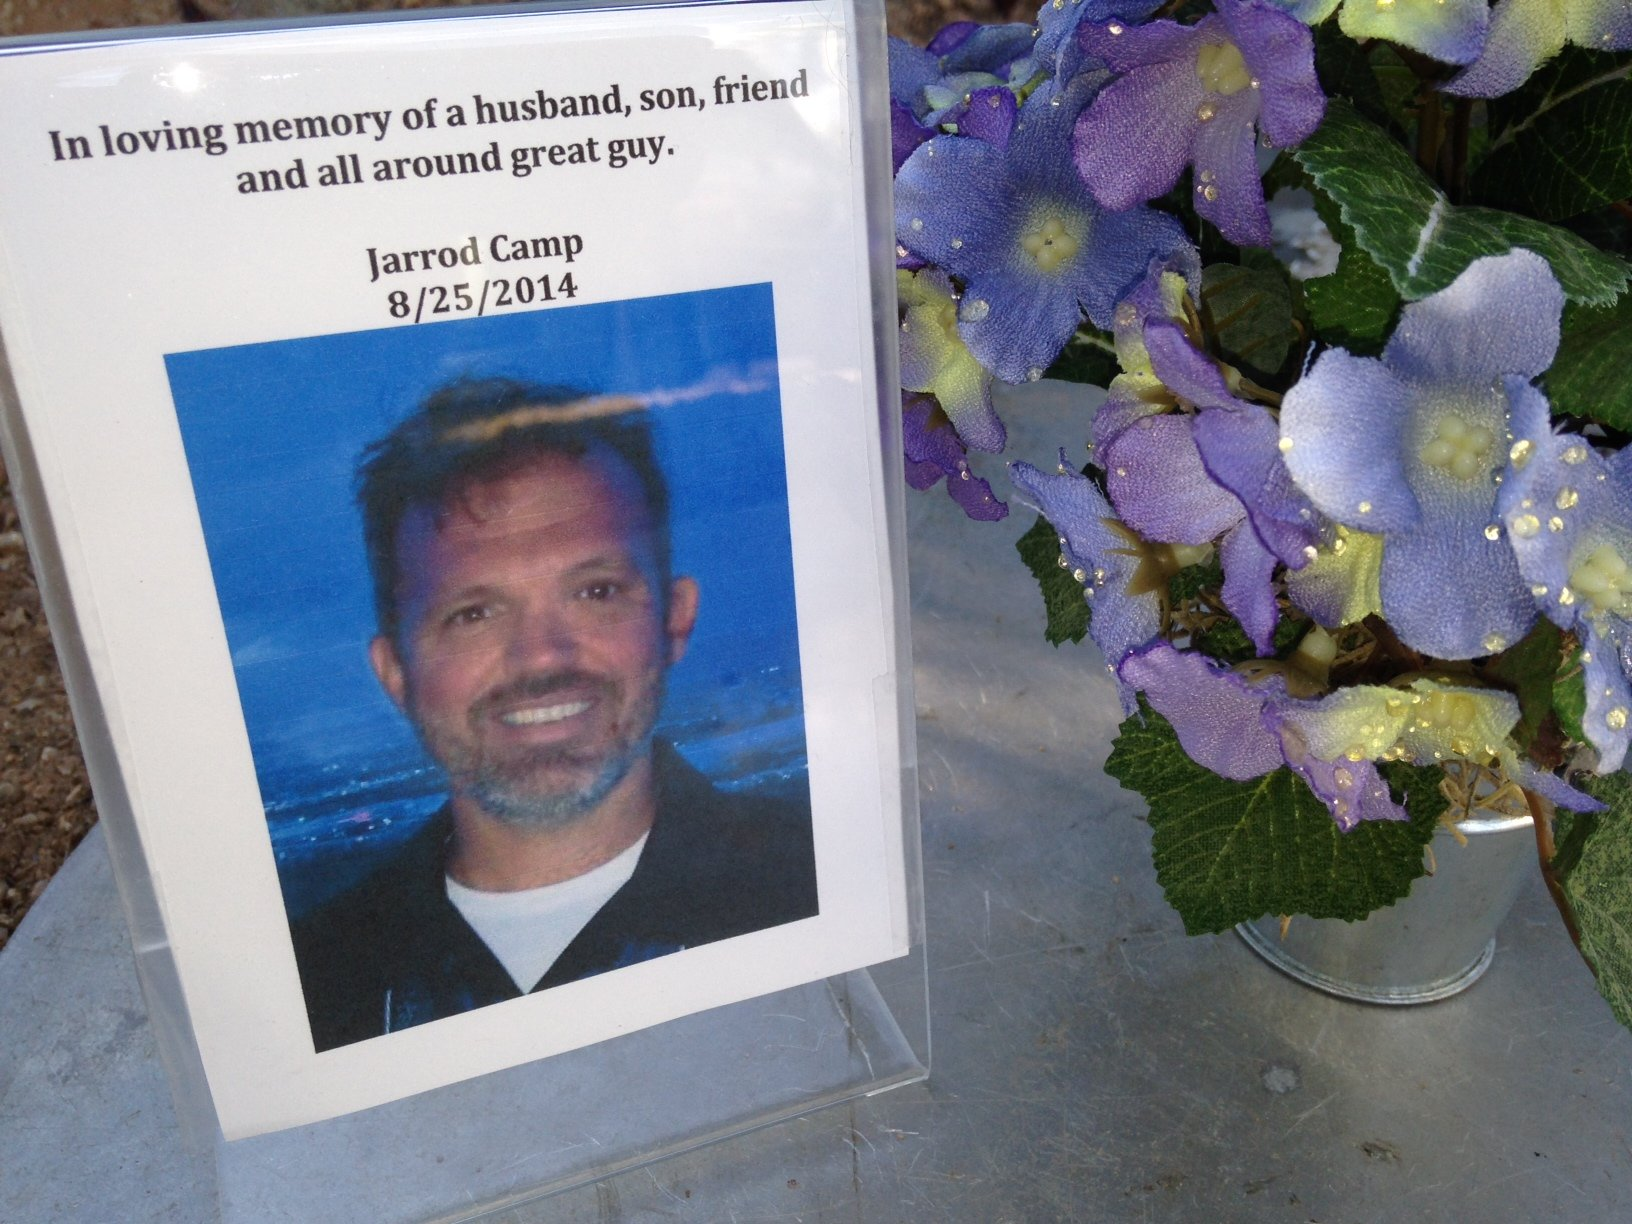 Memorial set up for Jarrod Camp (Source: CBS 5 News)